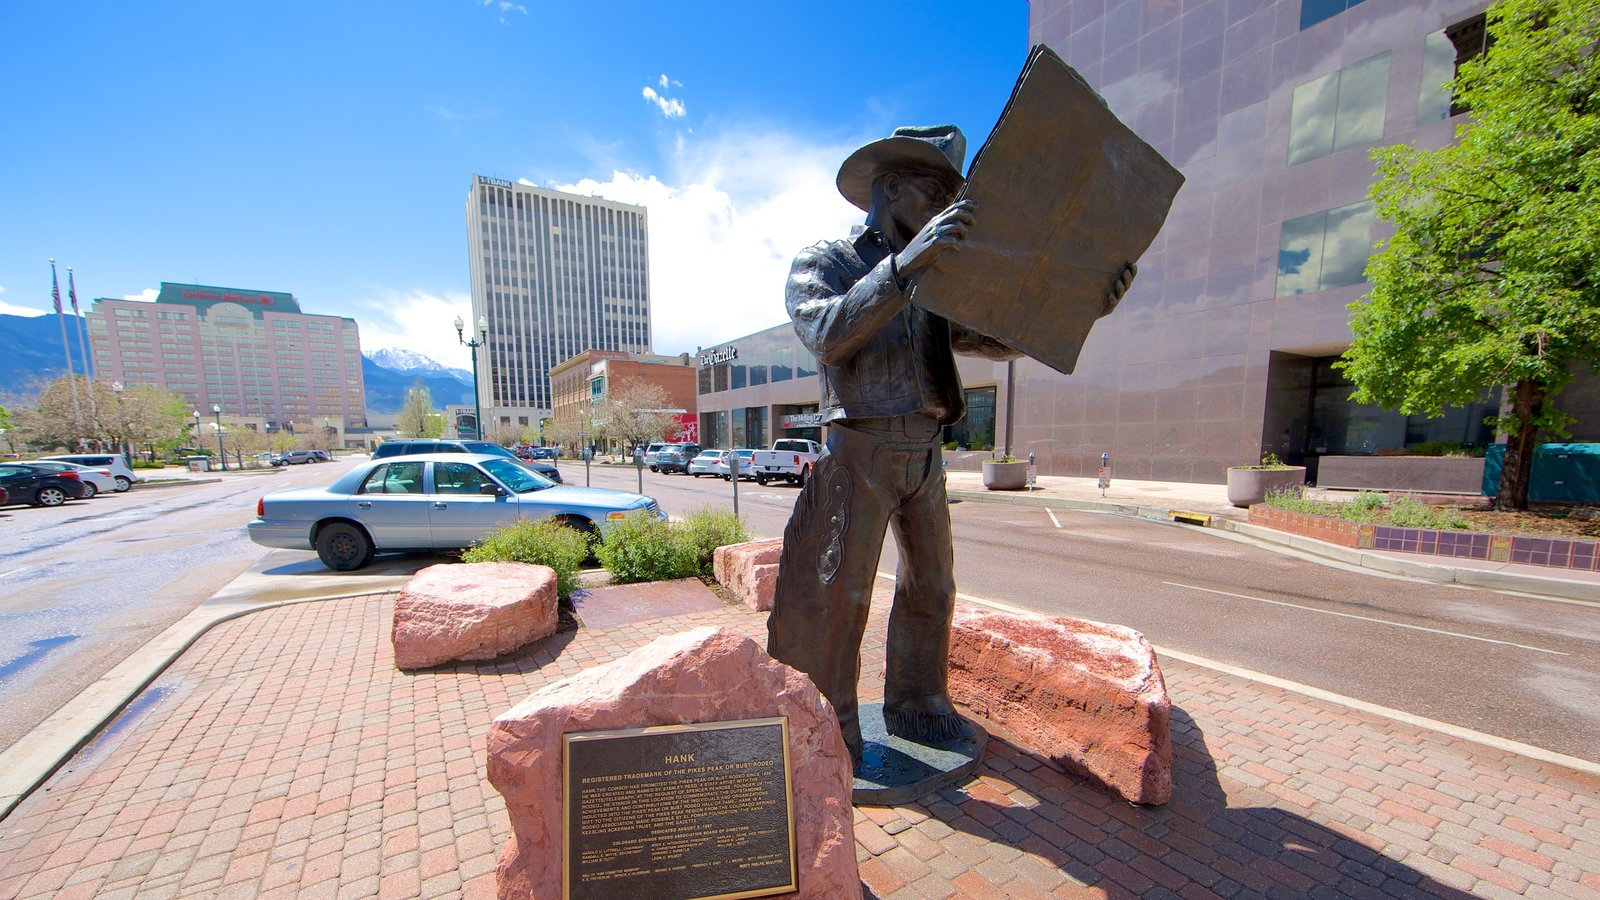 Art colorado springs - Downtown Colorado Springs Which Includes Street Scenes And A Statue Or Sculpture